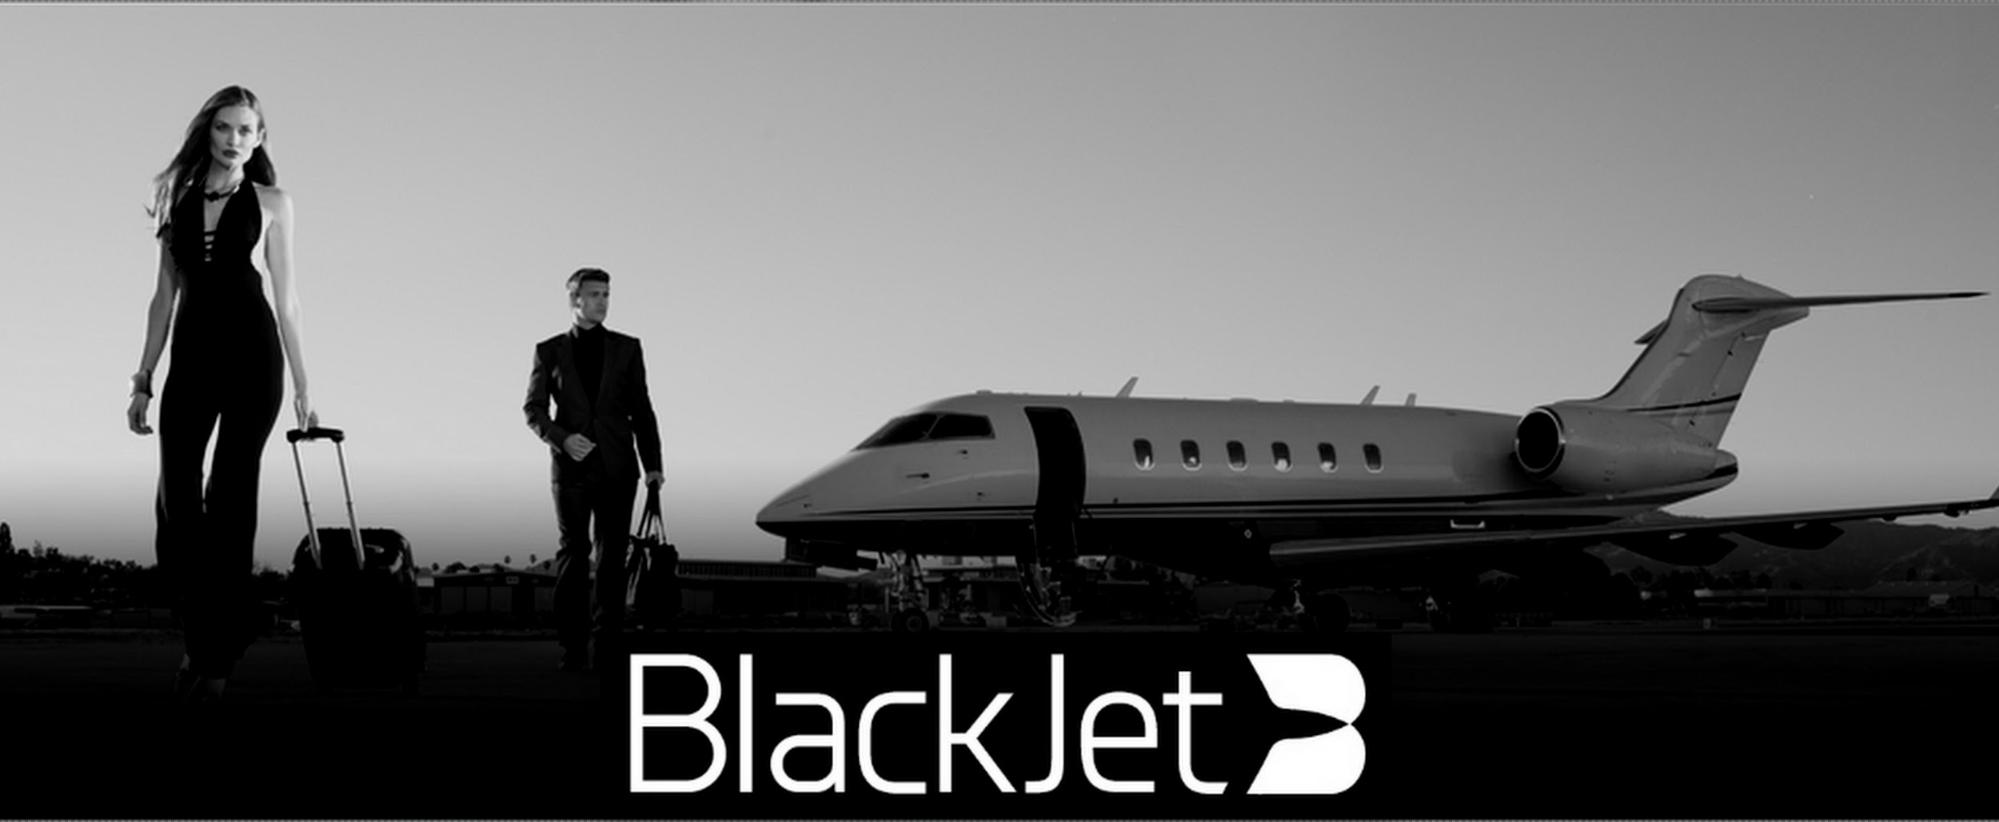 Blackjet photo in airport with logo